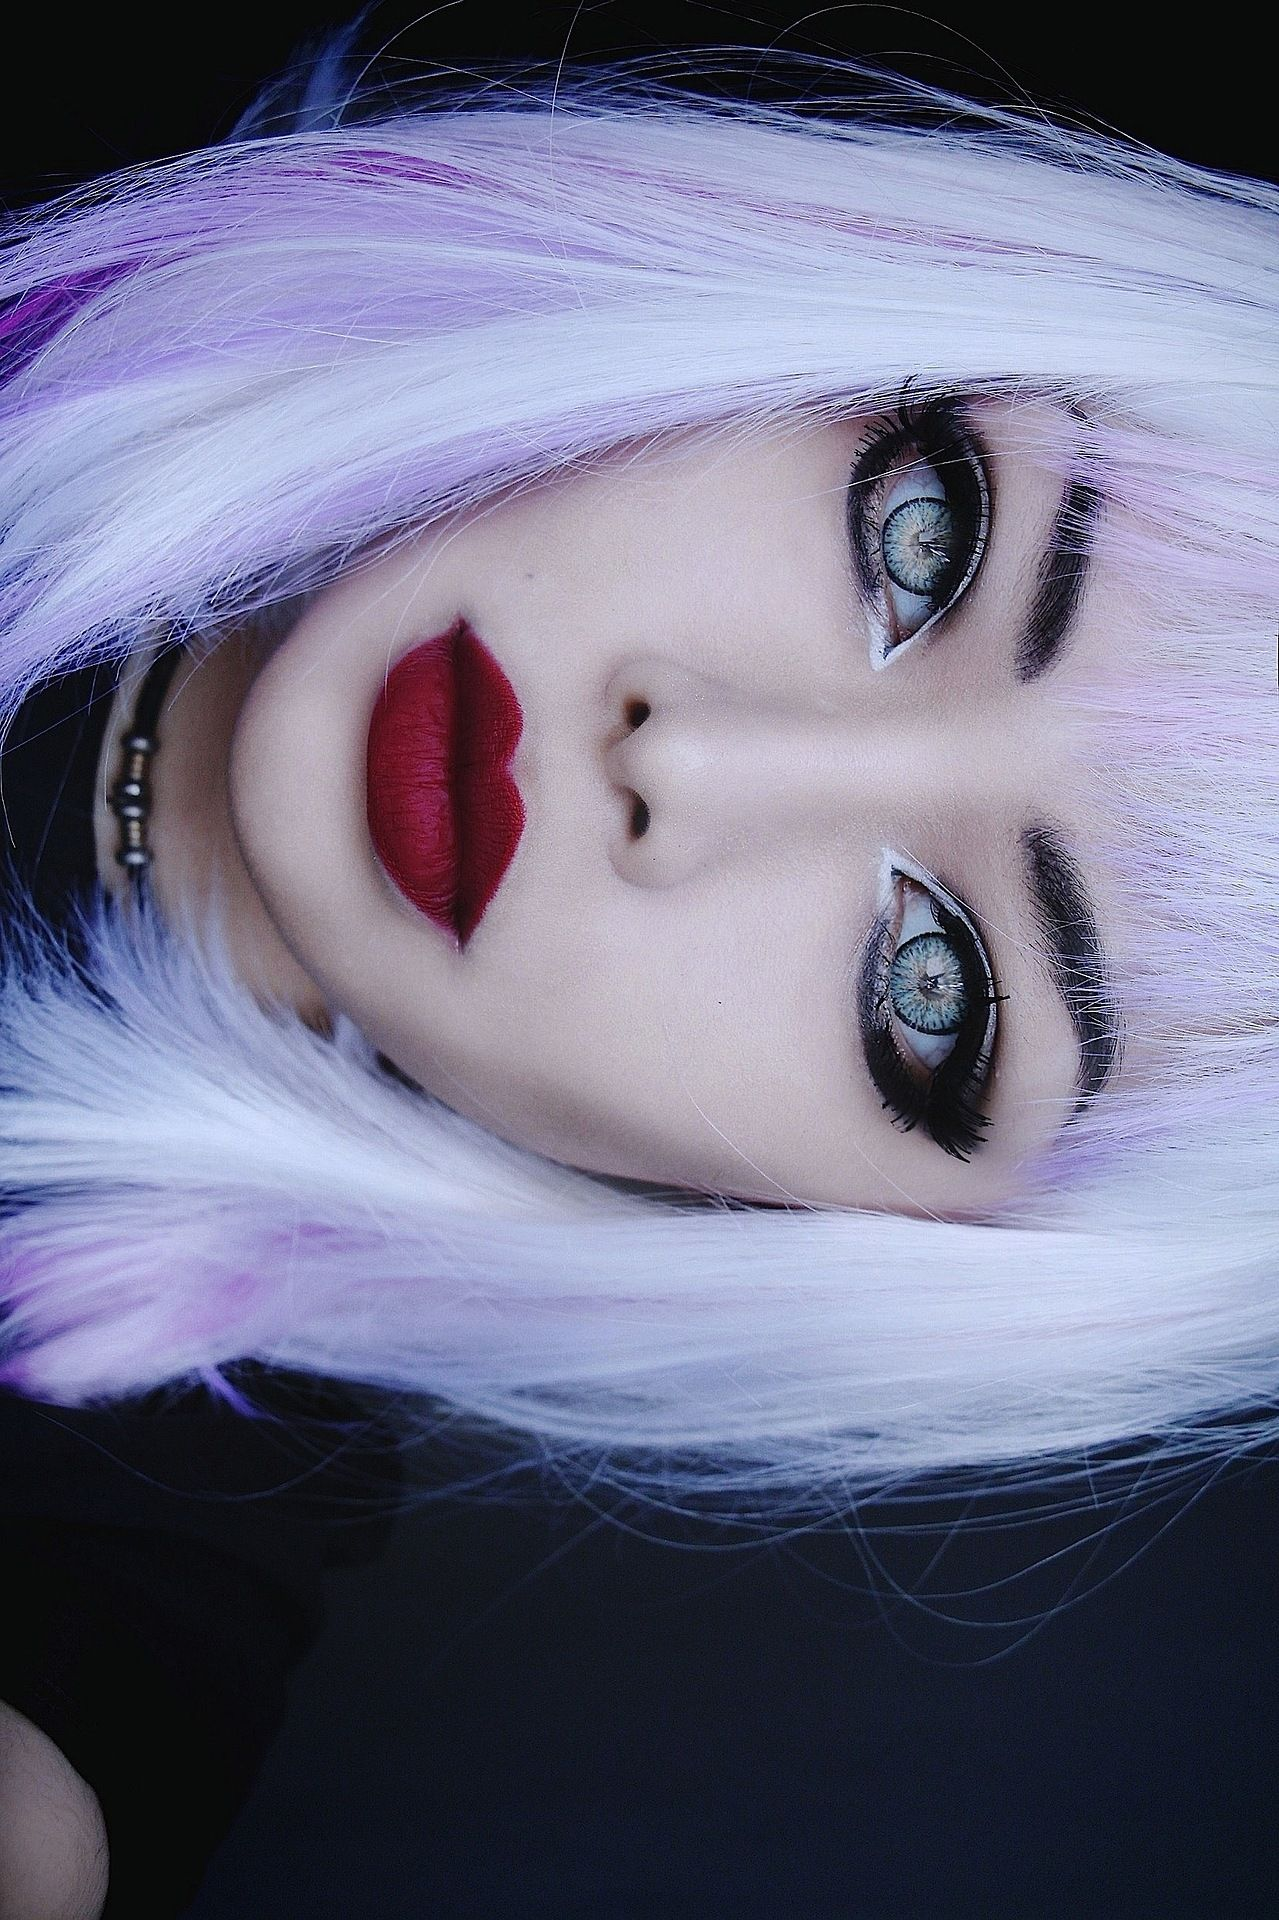 Colorful Hair #coloredeyecontacts